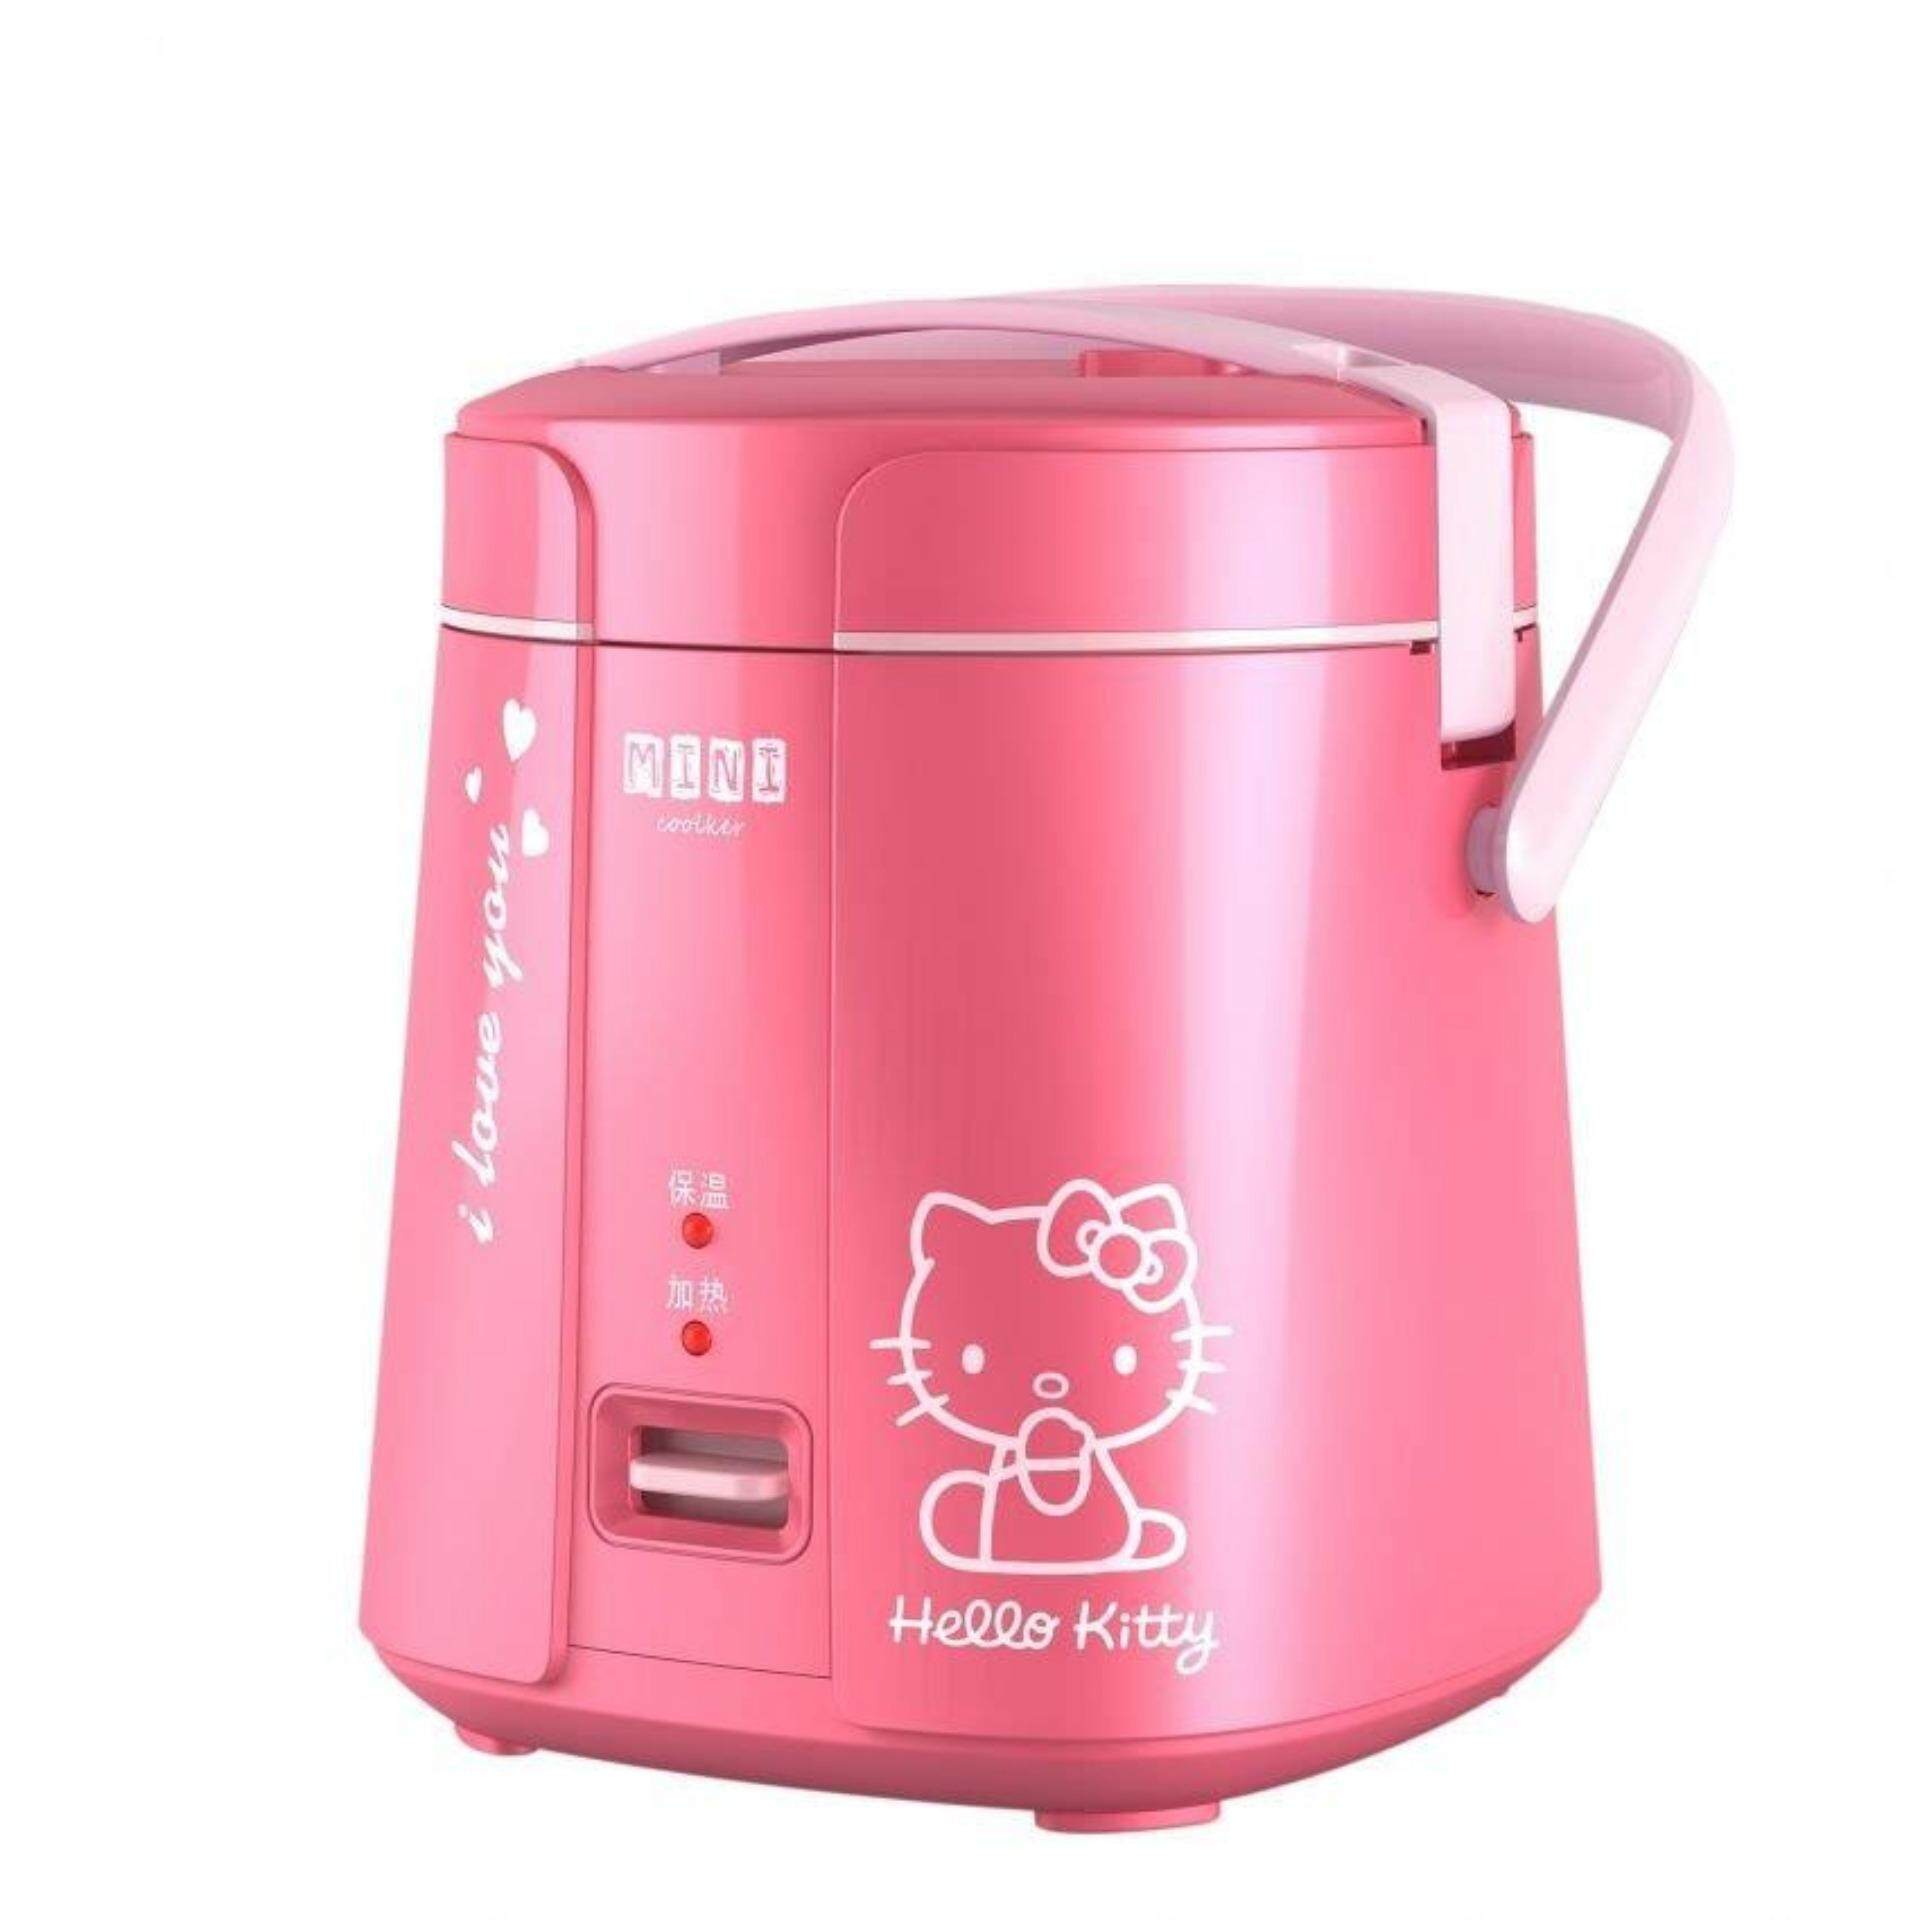 Portable 1.2L Mini Rice Cooker Stainless Steel Container-Pink